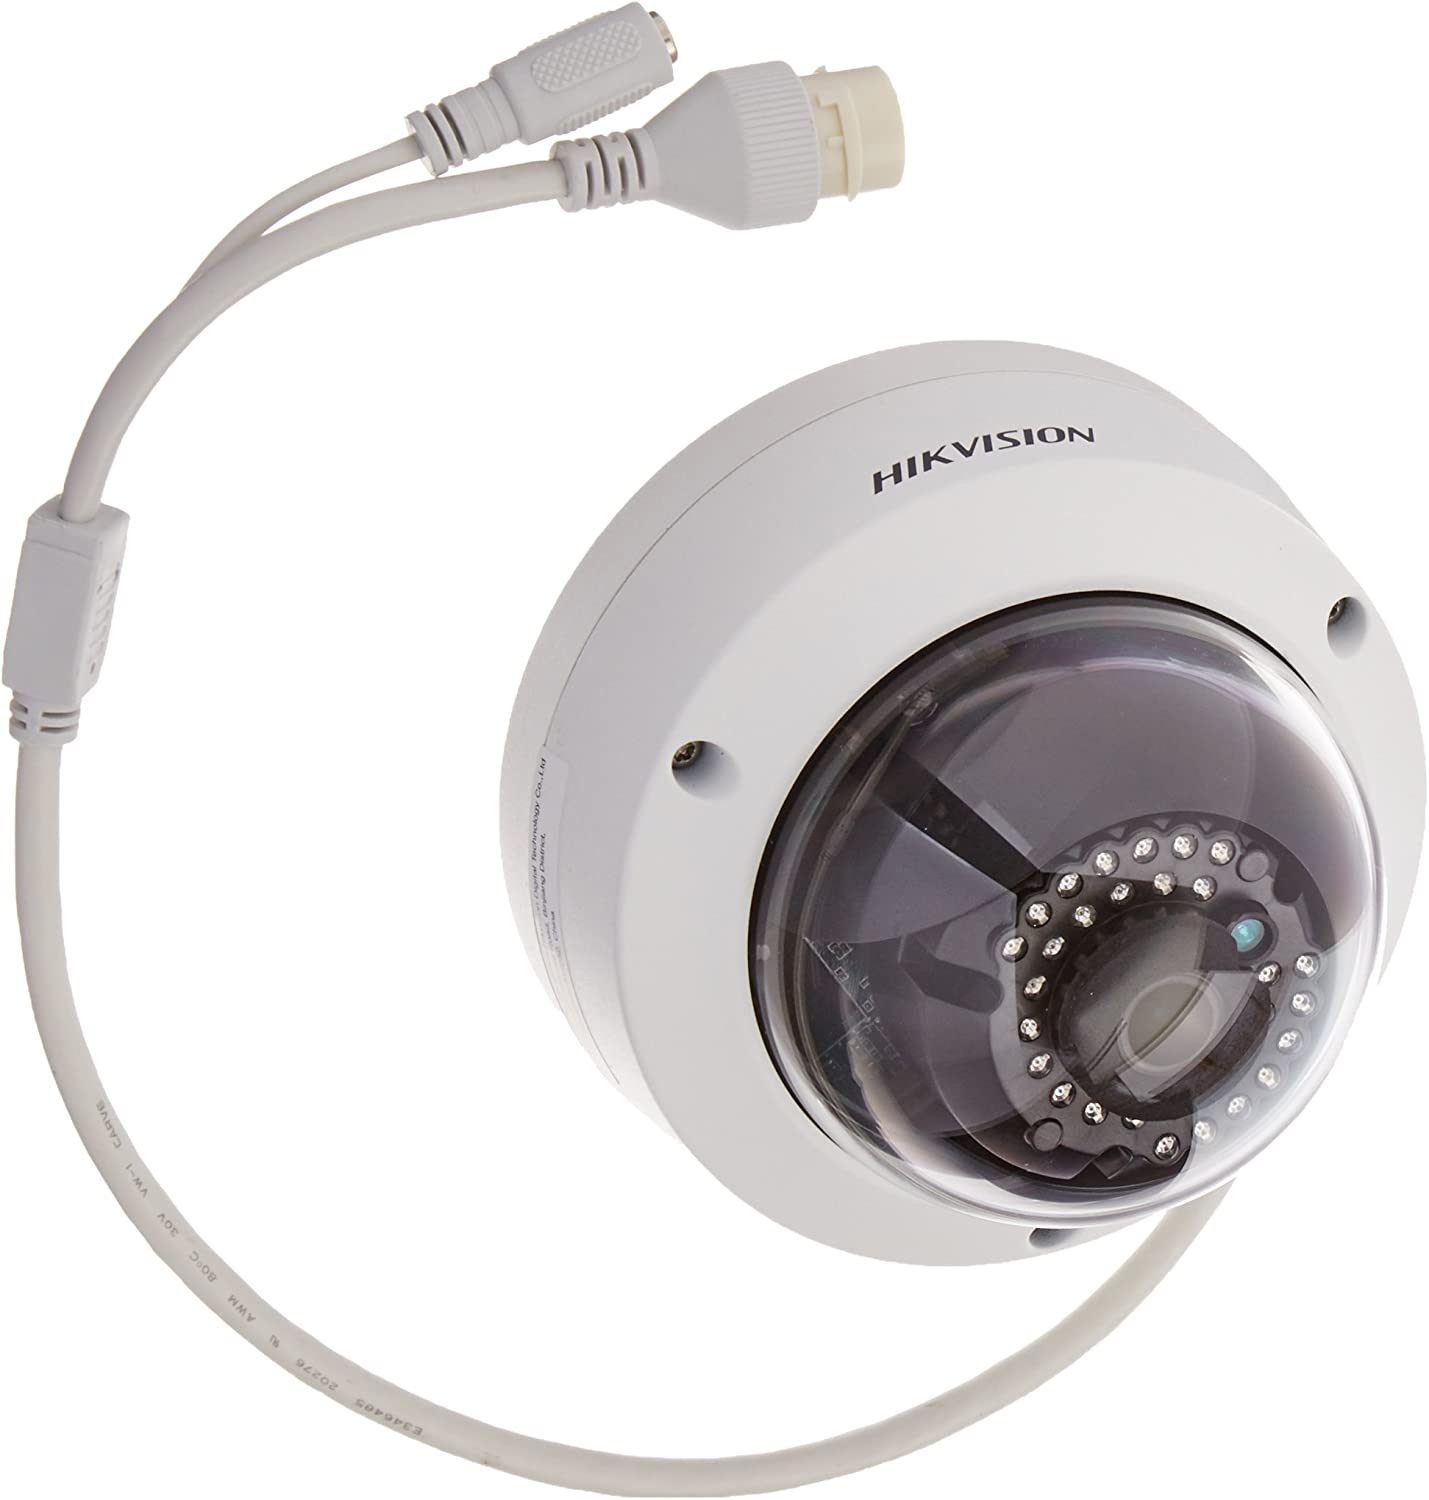 Hikvision DS-2CD2132F-I 3MP HD Outdoor Day Night Vandal-Proof IP Network Dome Camera with 4mm Lens, 2048×1536, 20fps, H.264, MJPEG, PoE